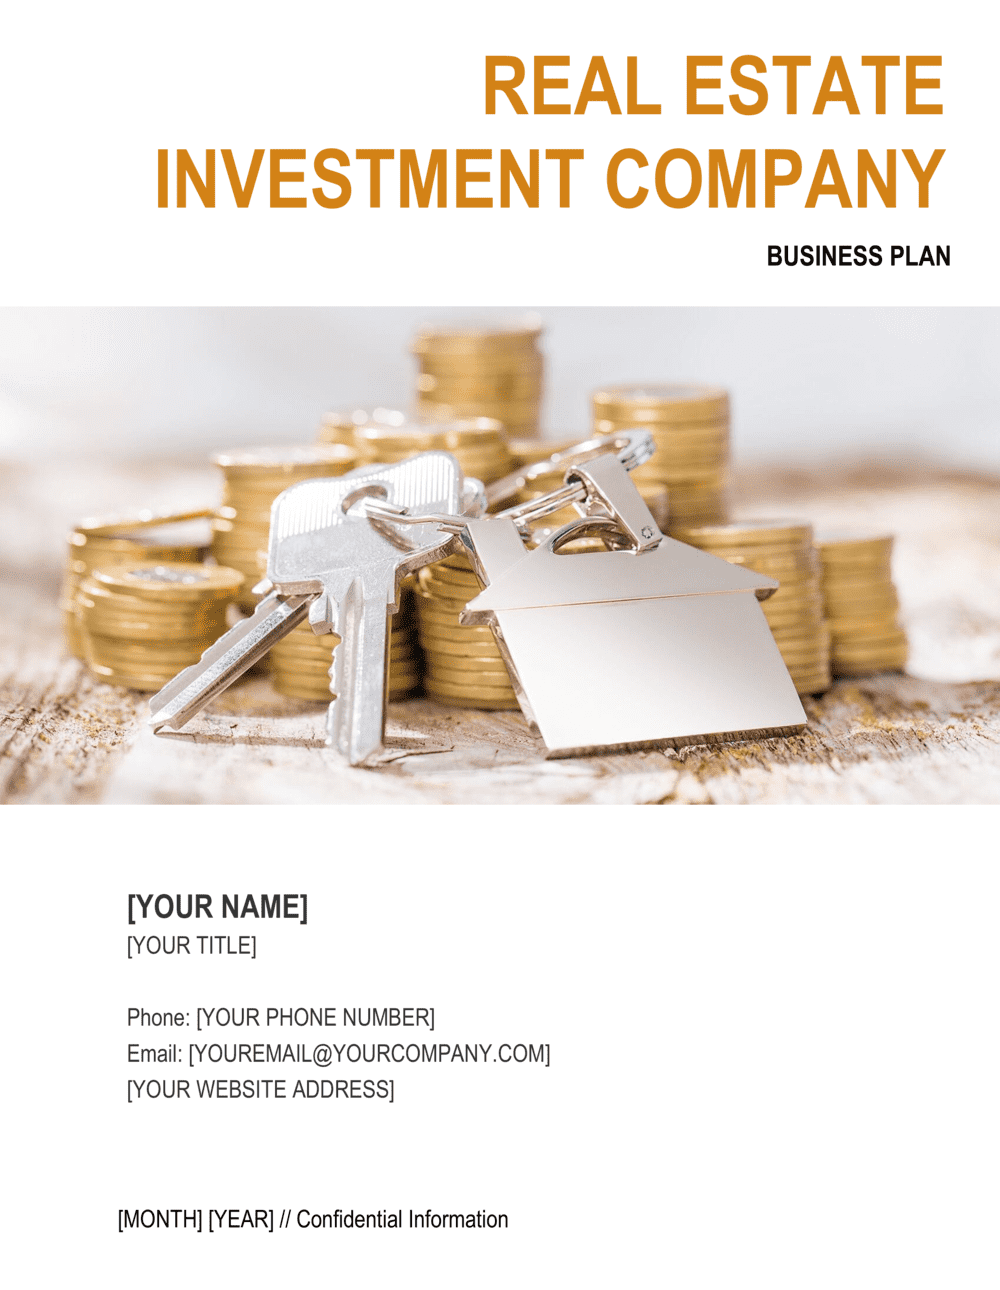 This real estate investment business plan sample has unveiled the basic requirements for writing your business plan. Real Estate Investment Company Business Plan Template By Business In A Box